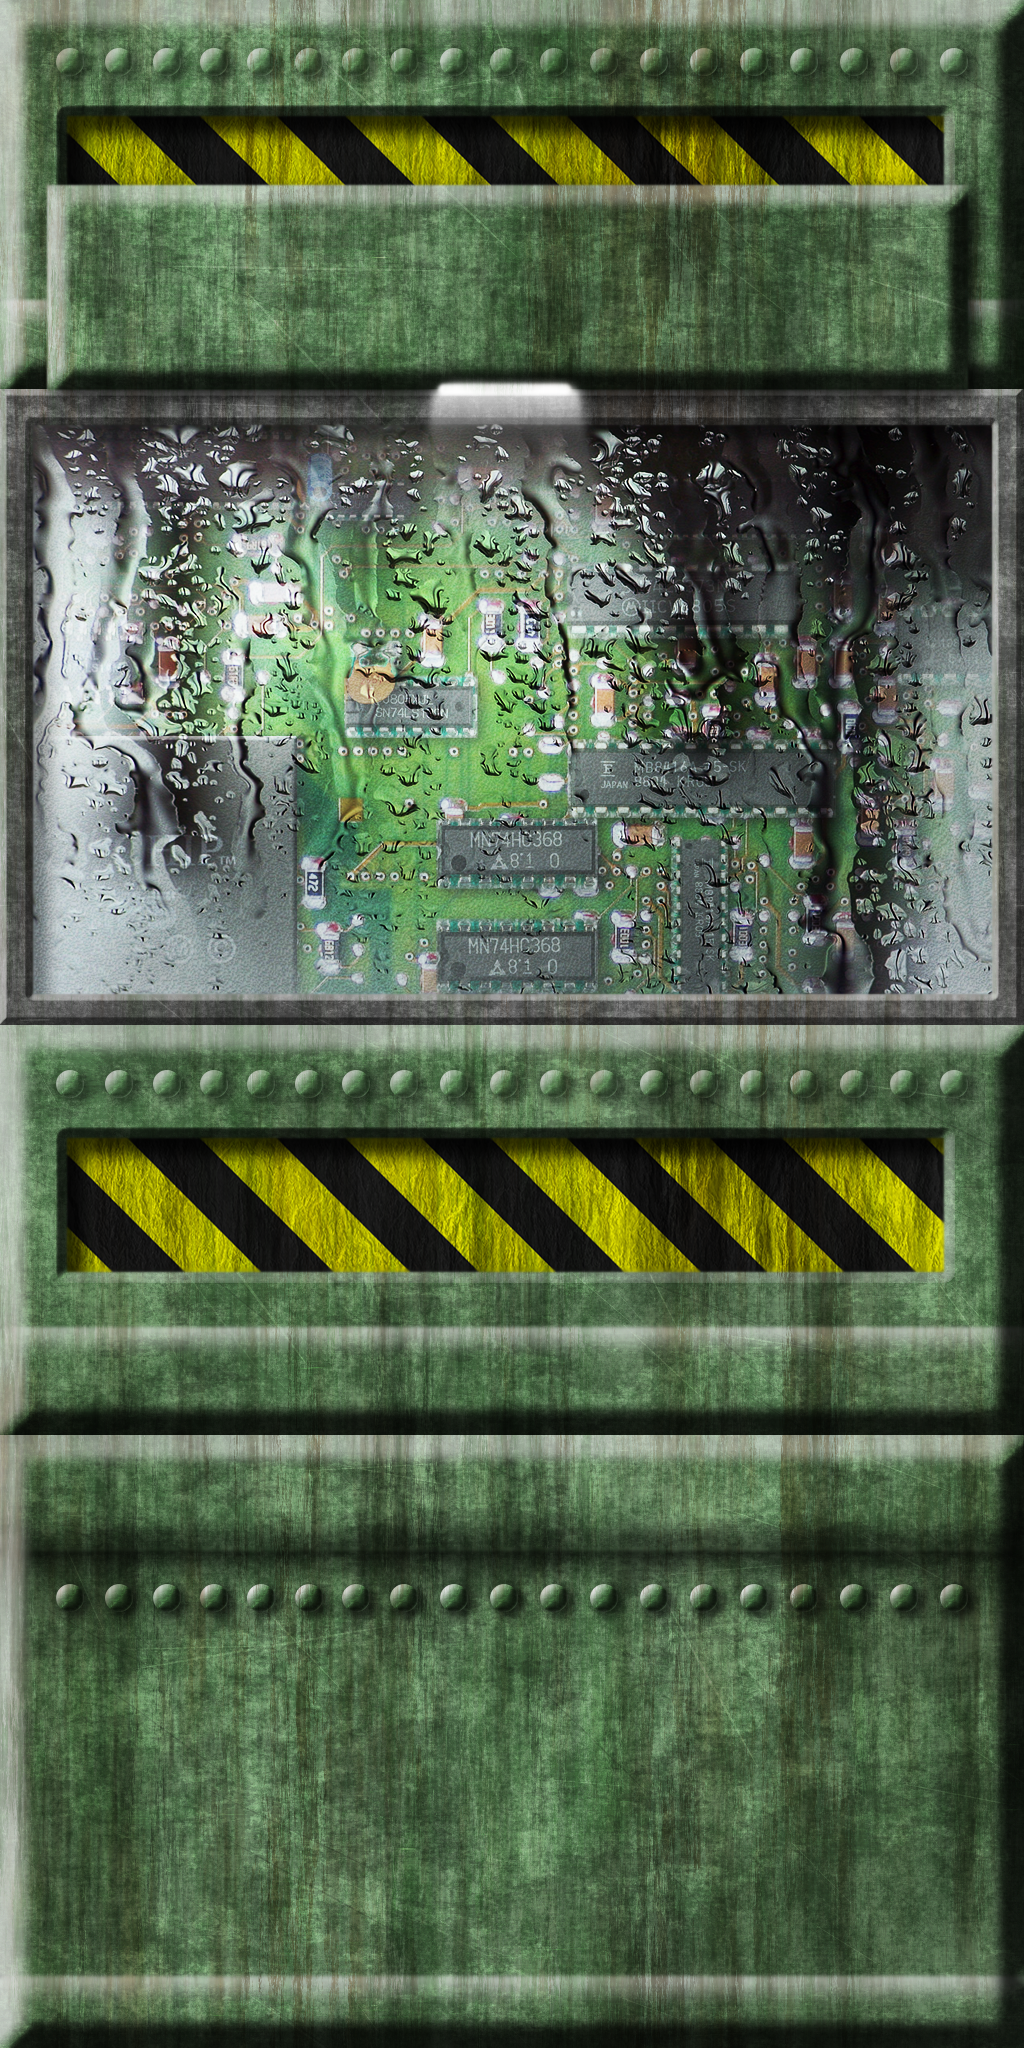 Green Tech Wall 01 by Hoover1979